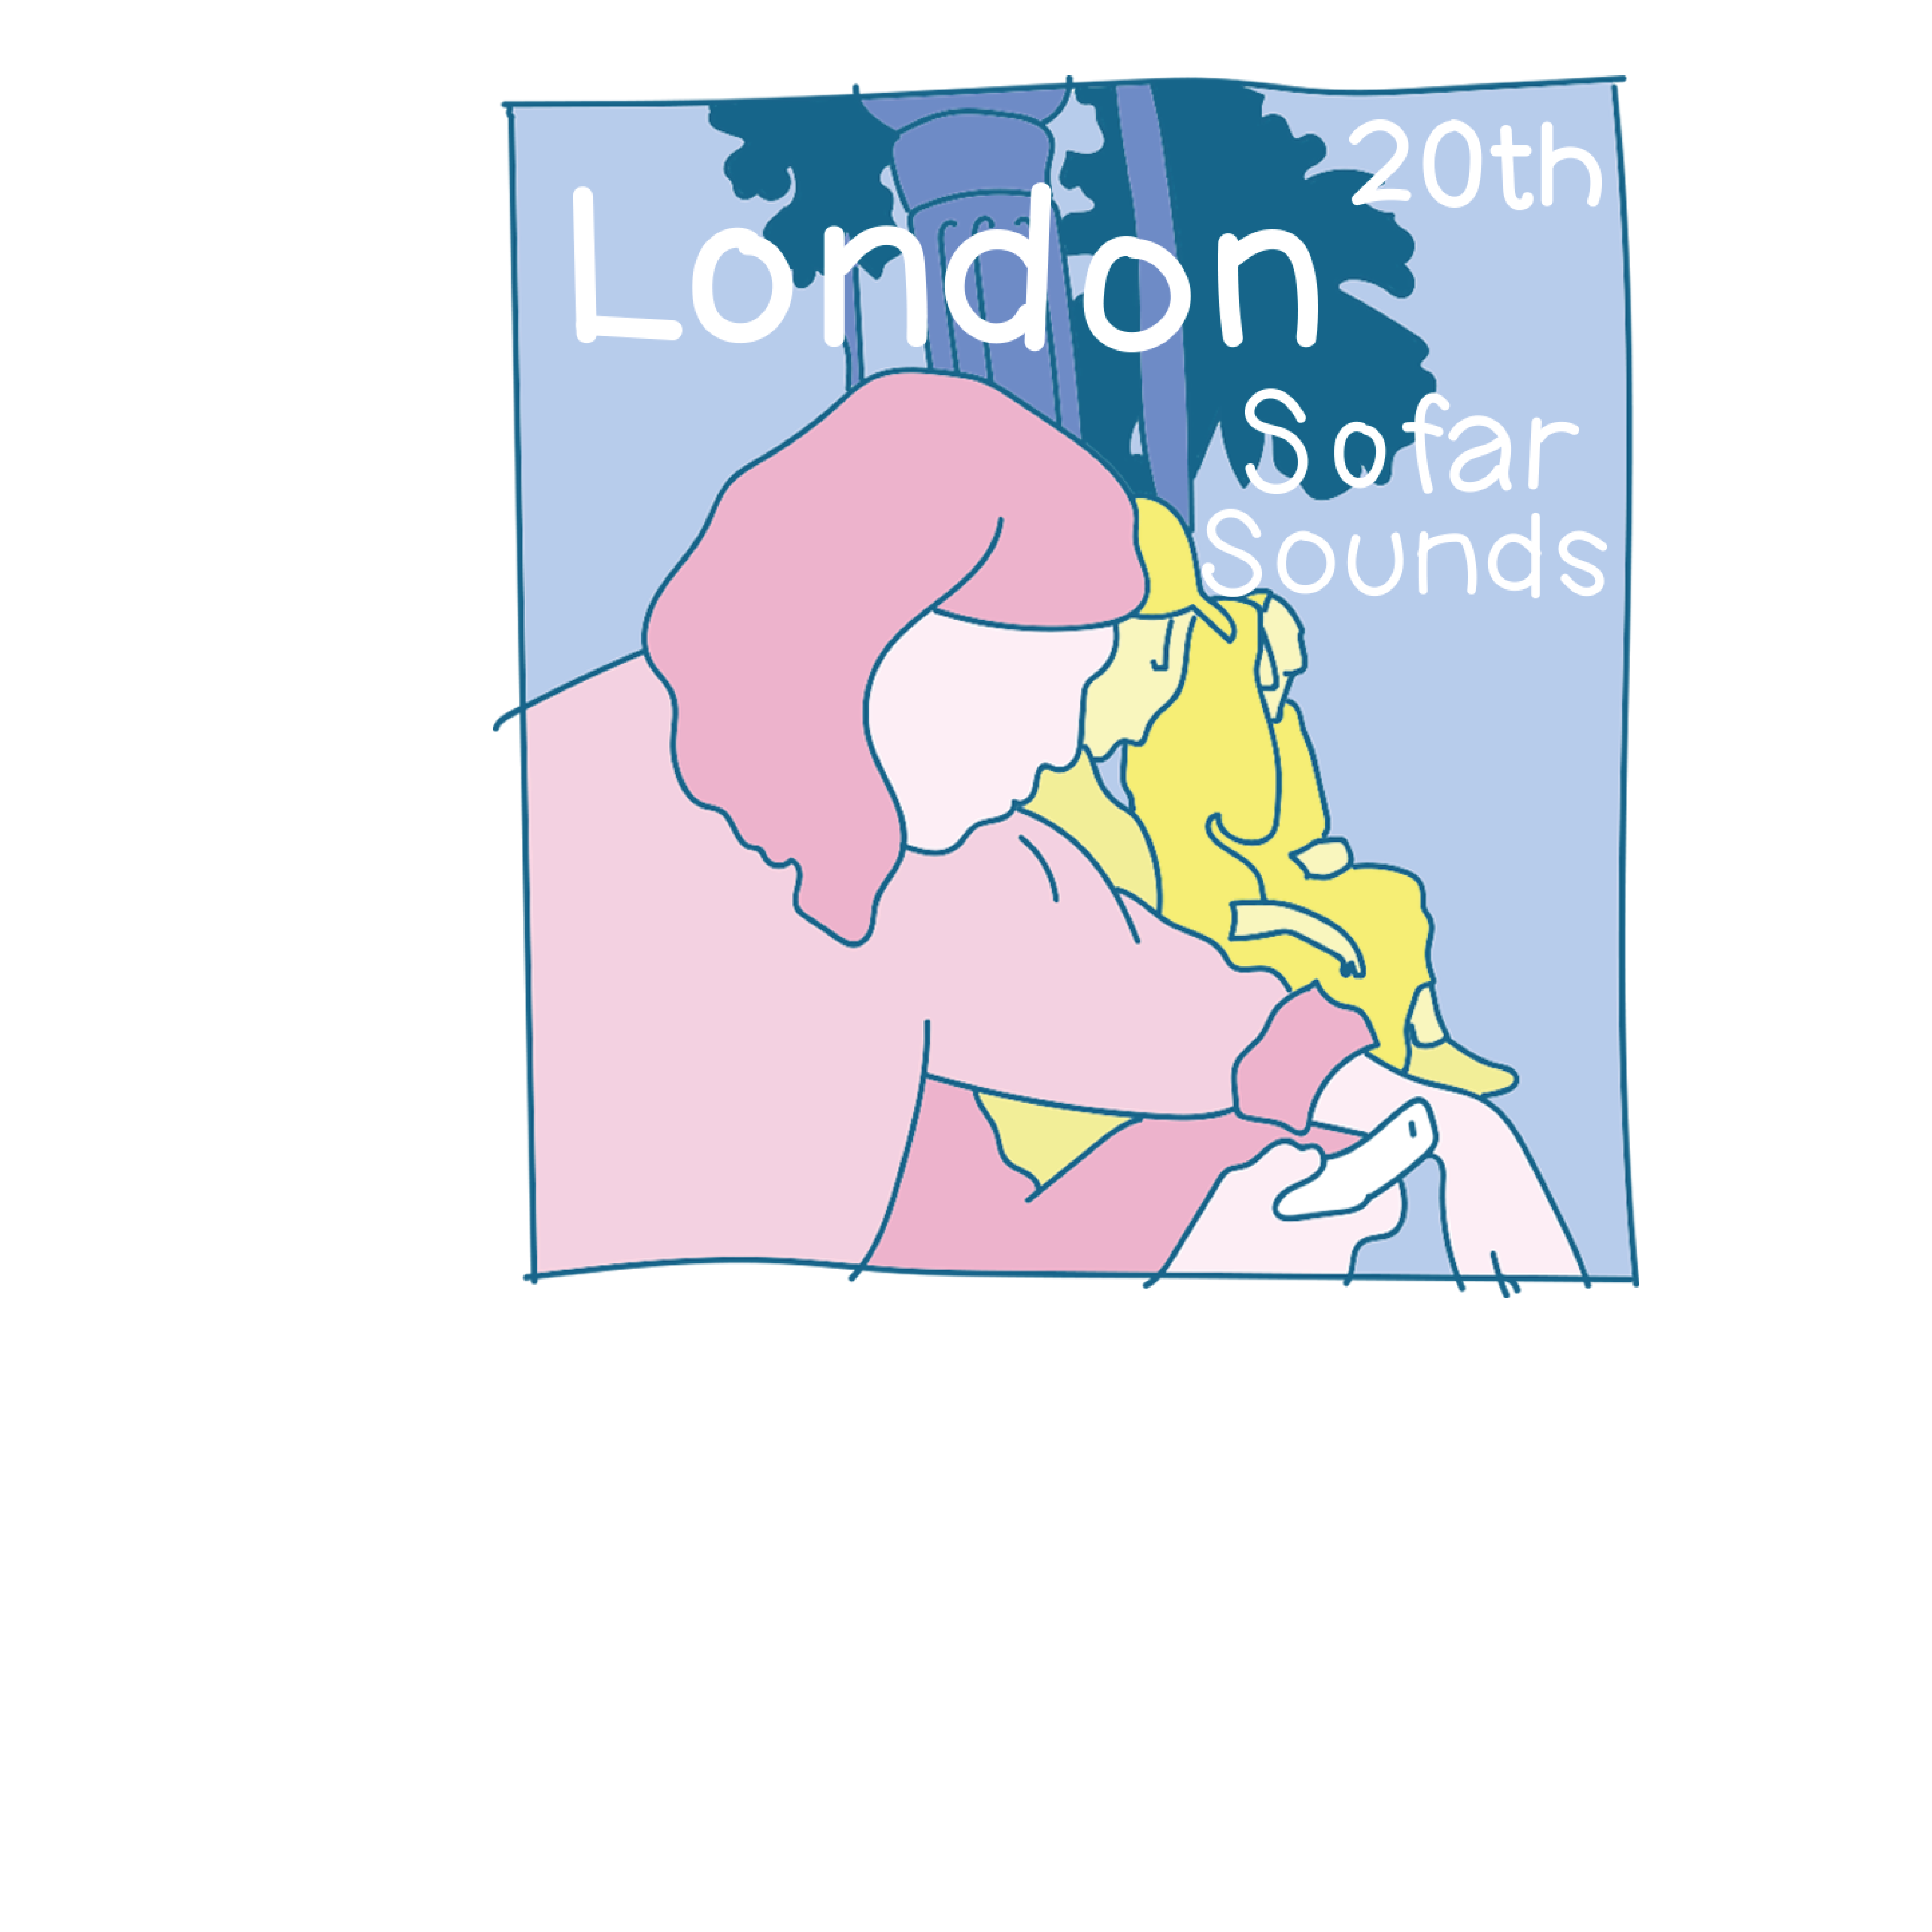 20th - London Sofar